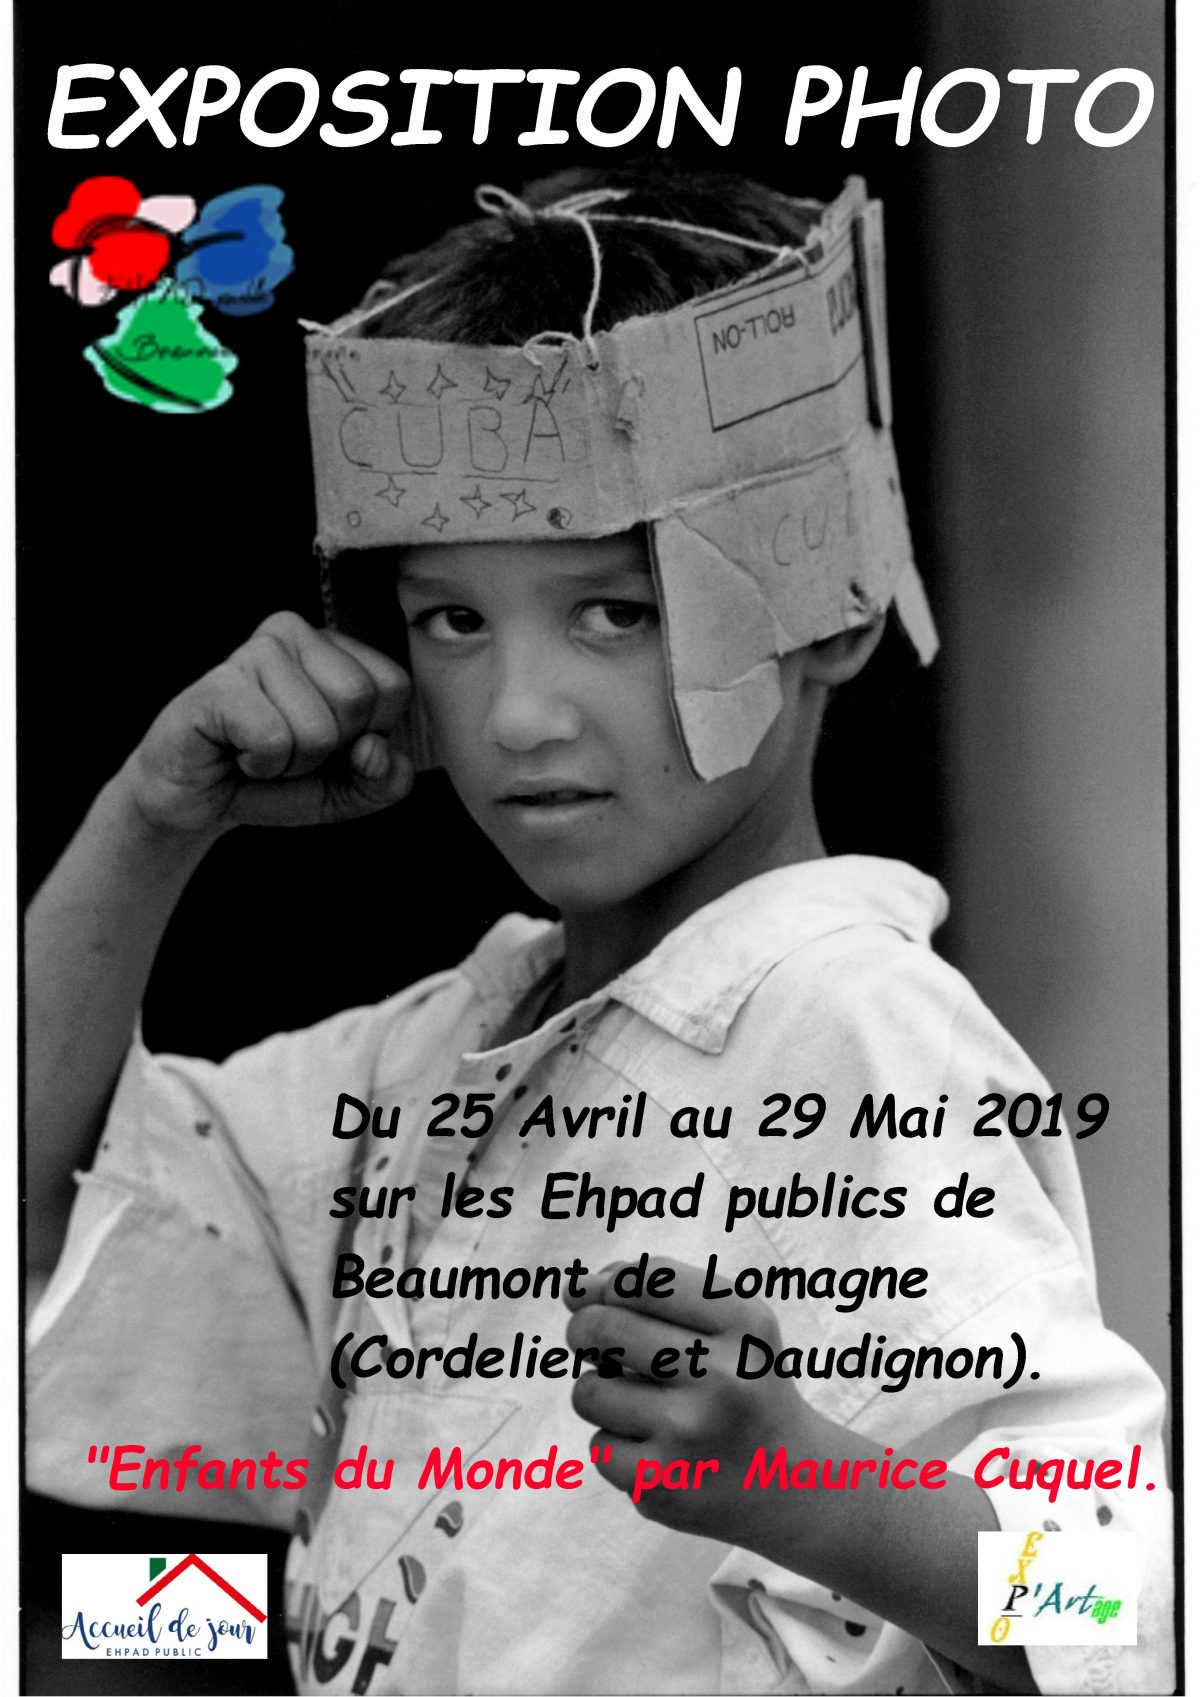 Exposition photo aux Cordeliers